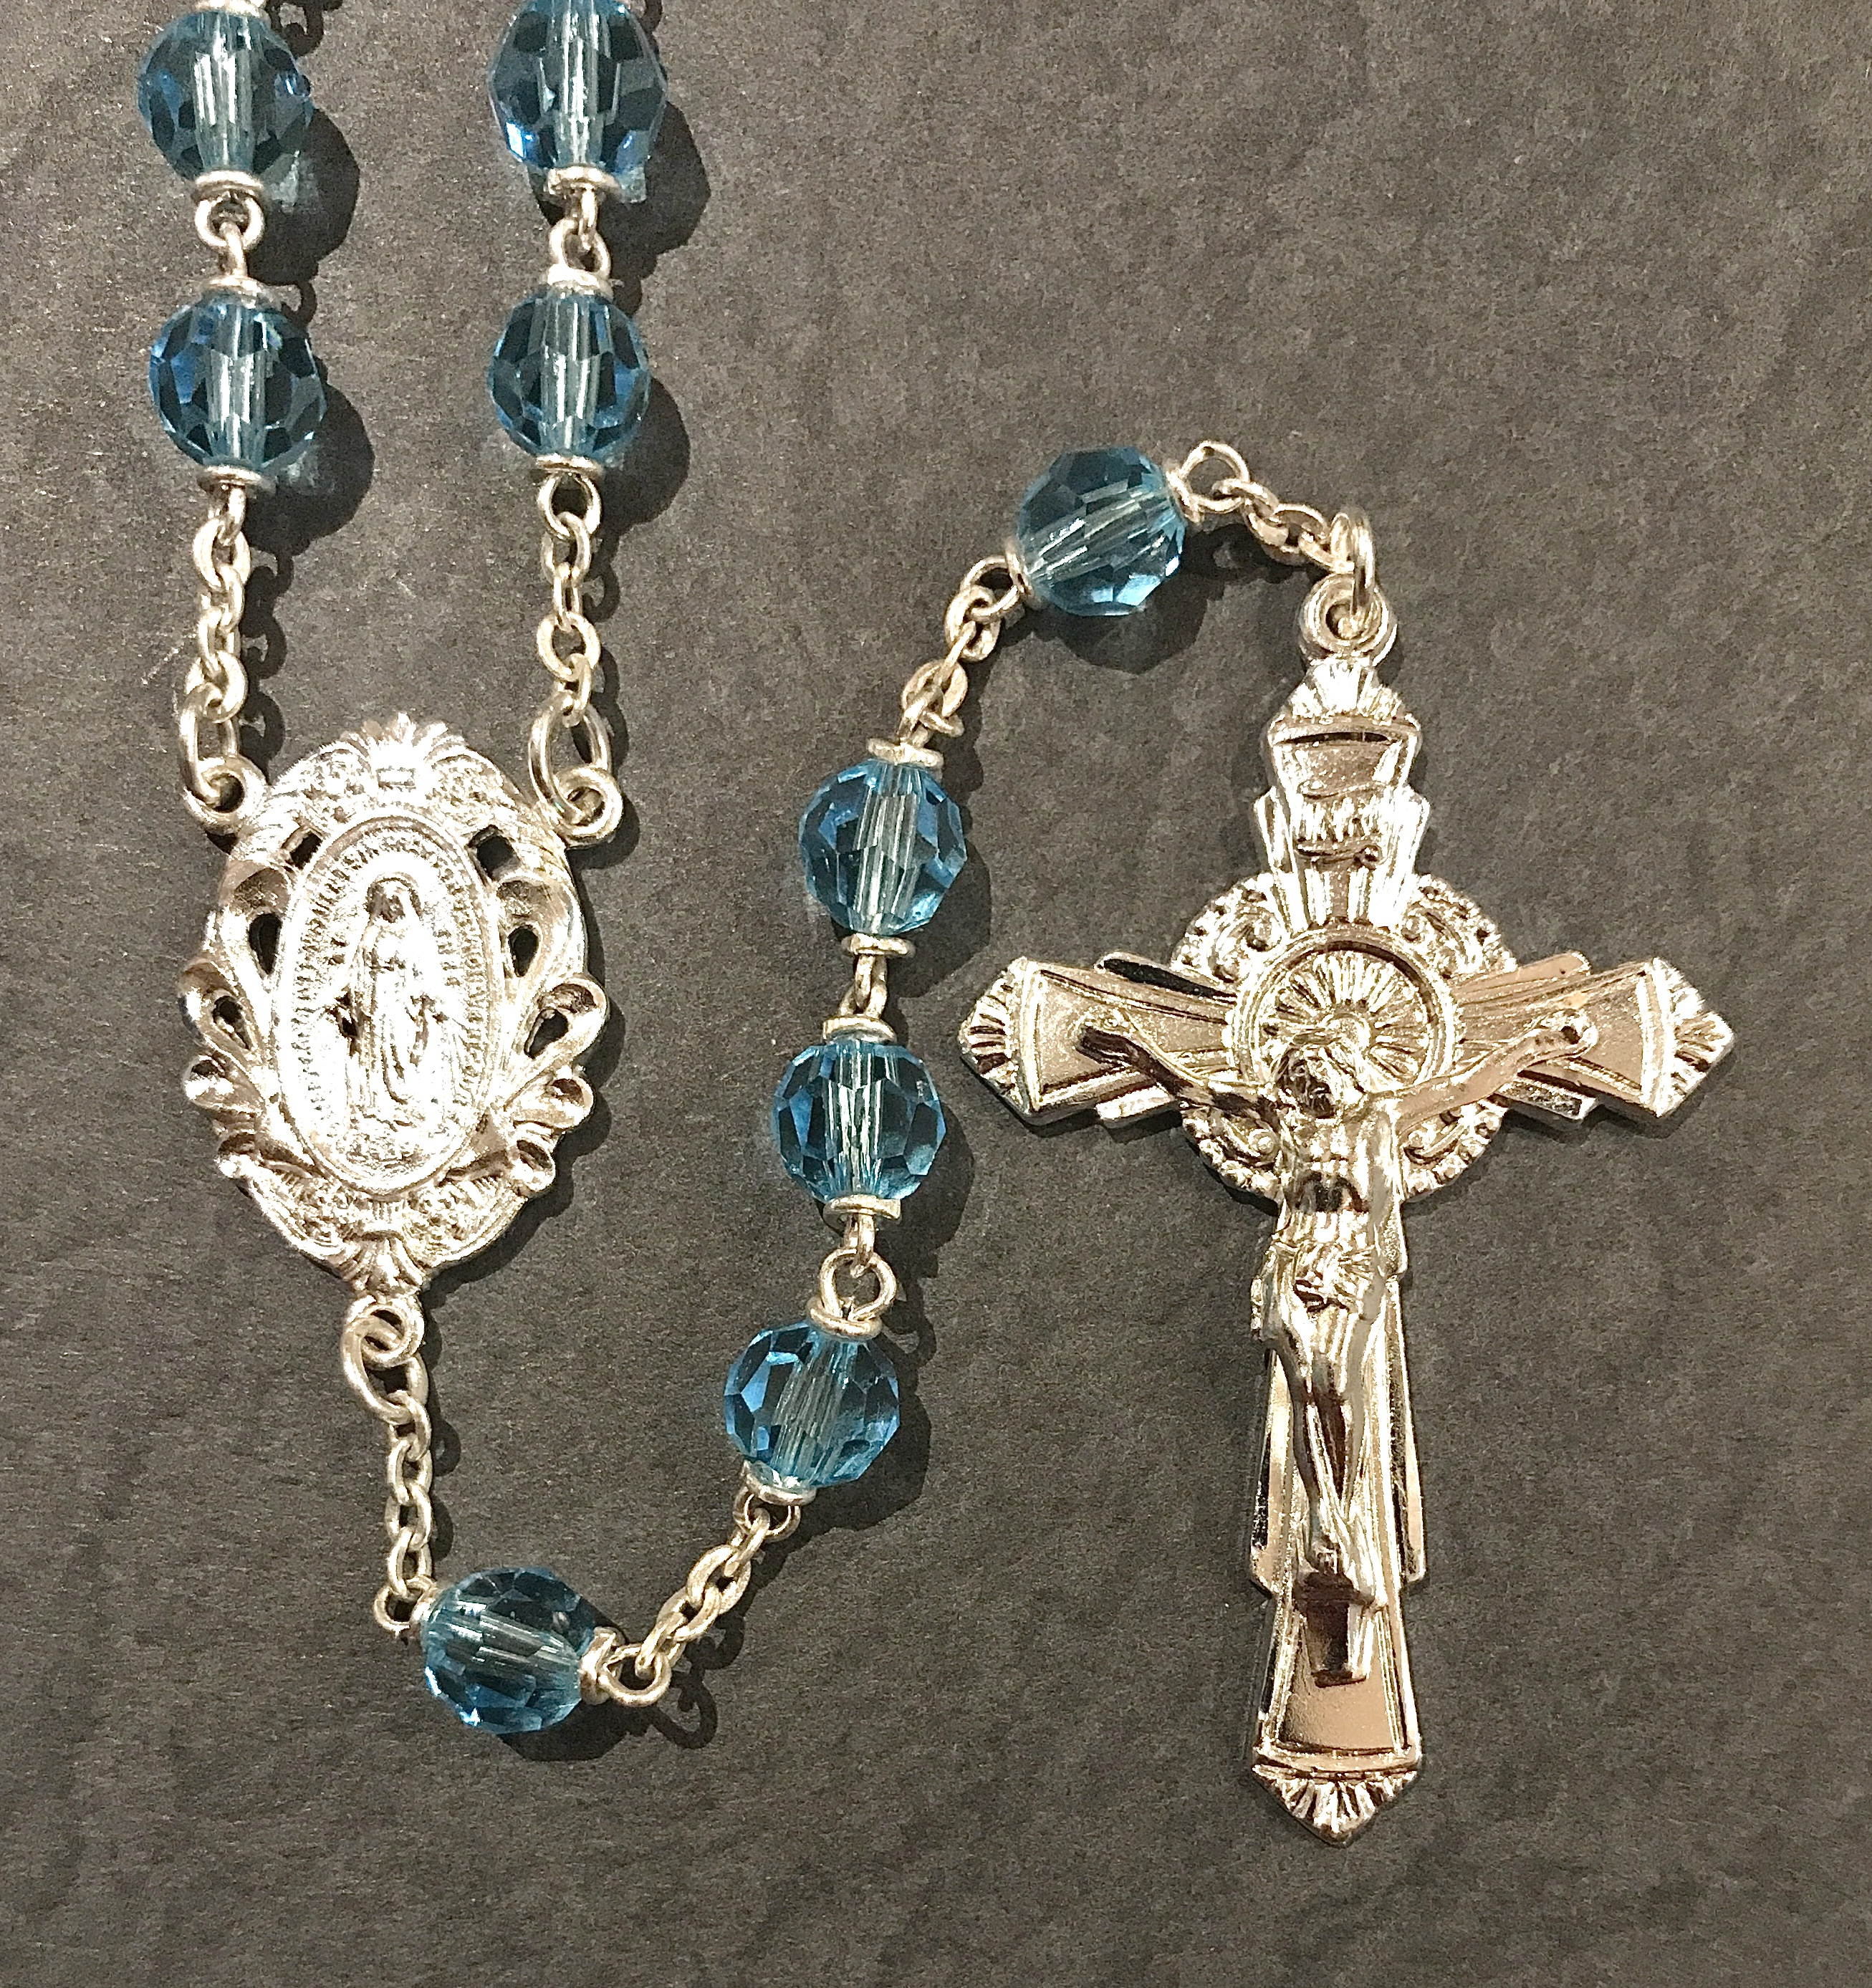 6mm AQUA TIN CUT LOC-LINK ROSARY WITH STERLING SILVER PLATED CRUCIFIX, CENTER, WIRE, CHAIN GIFT BOXED